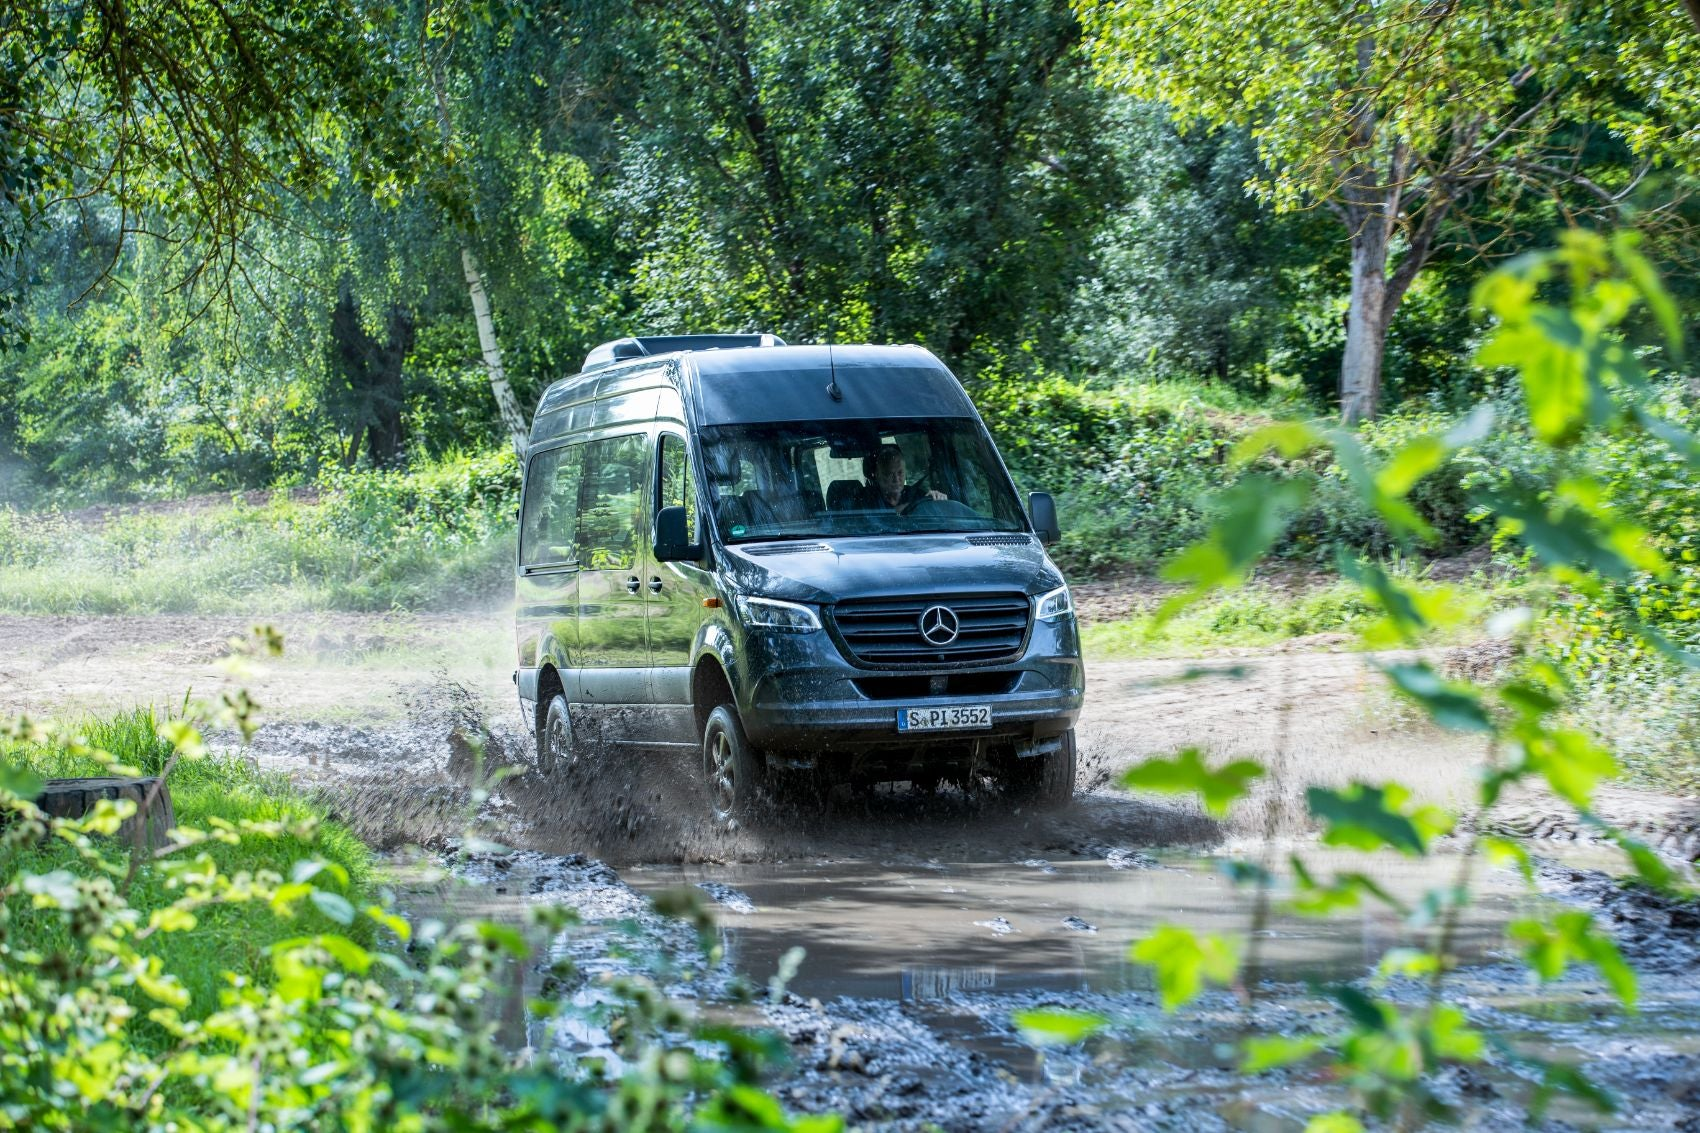 2022 Mercedes-Benz Sprinter: New Diesel Engine, AWD Capability & Innovative Speed Delivery Doors